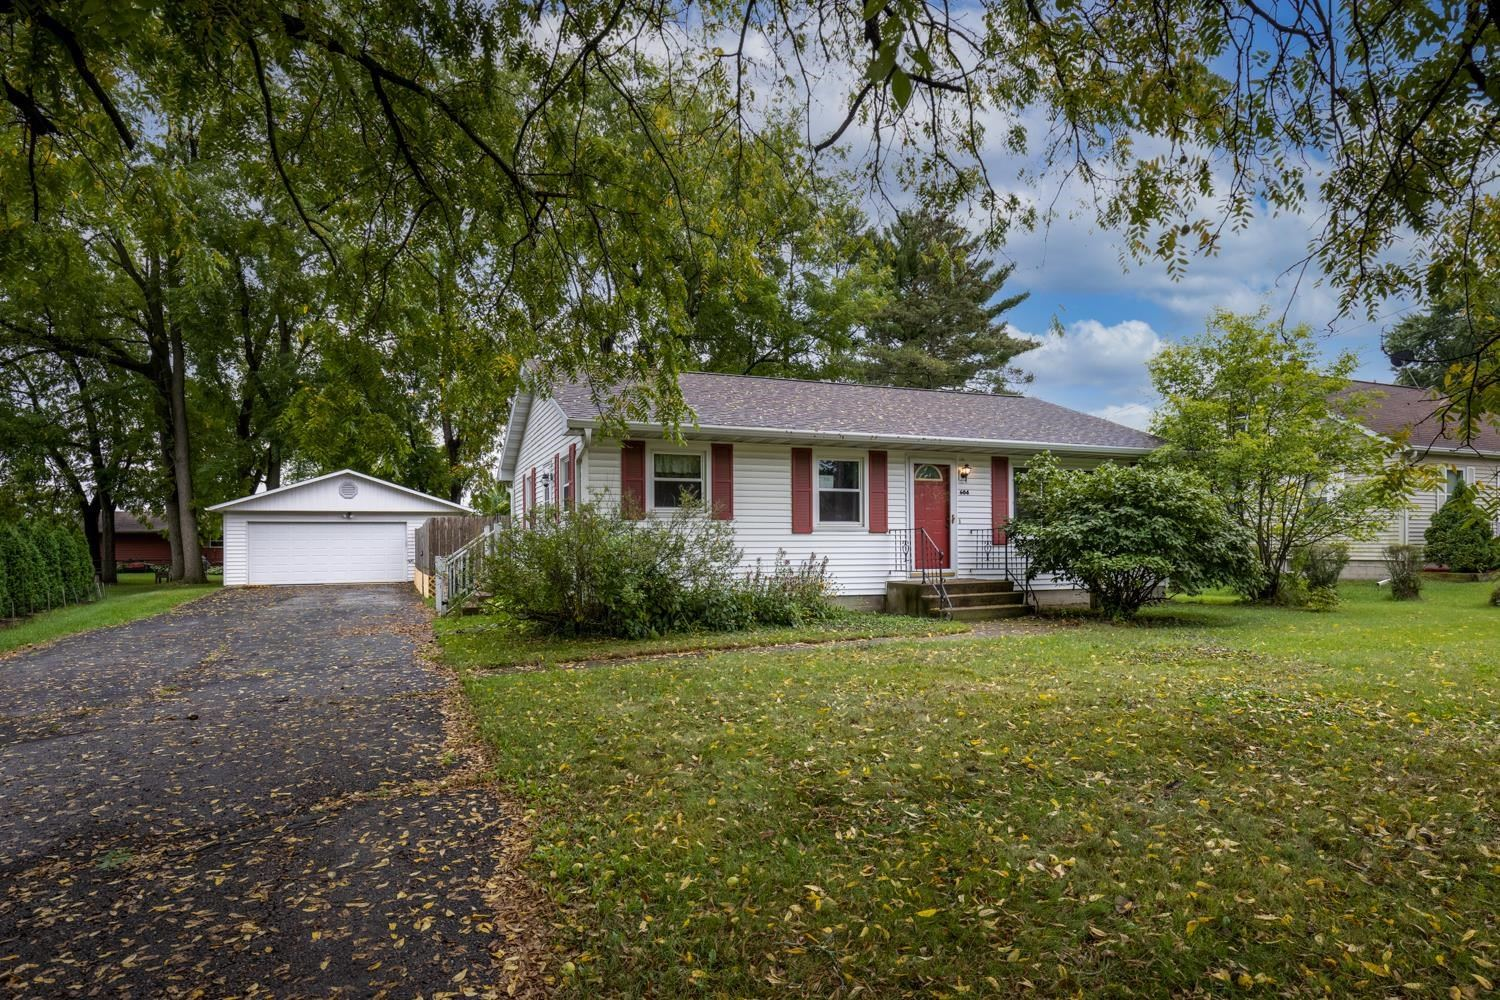 604 Hubbell St, Marshall, WI 53559 - #: 1919692